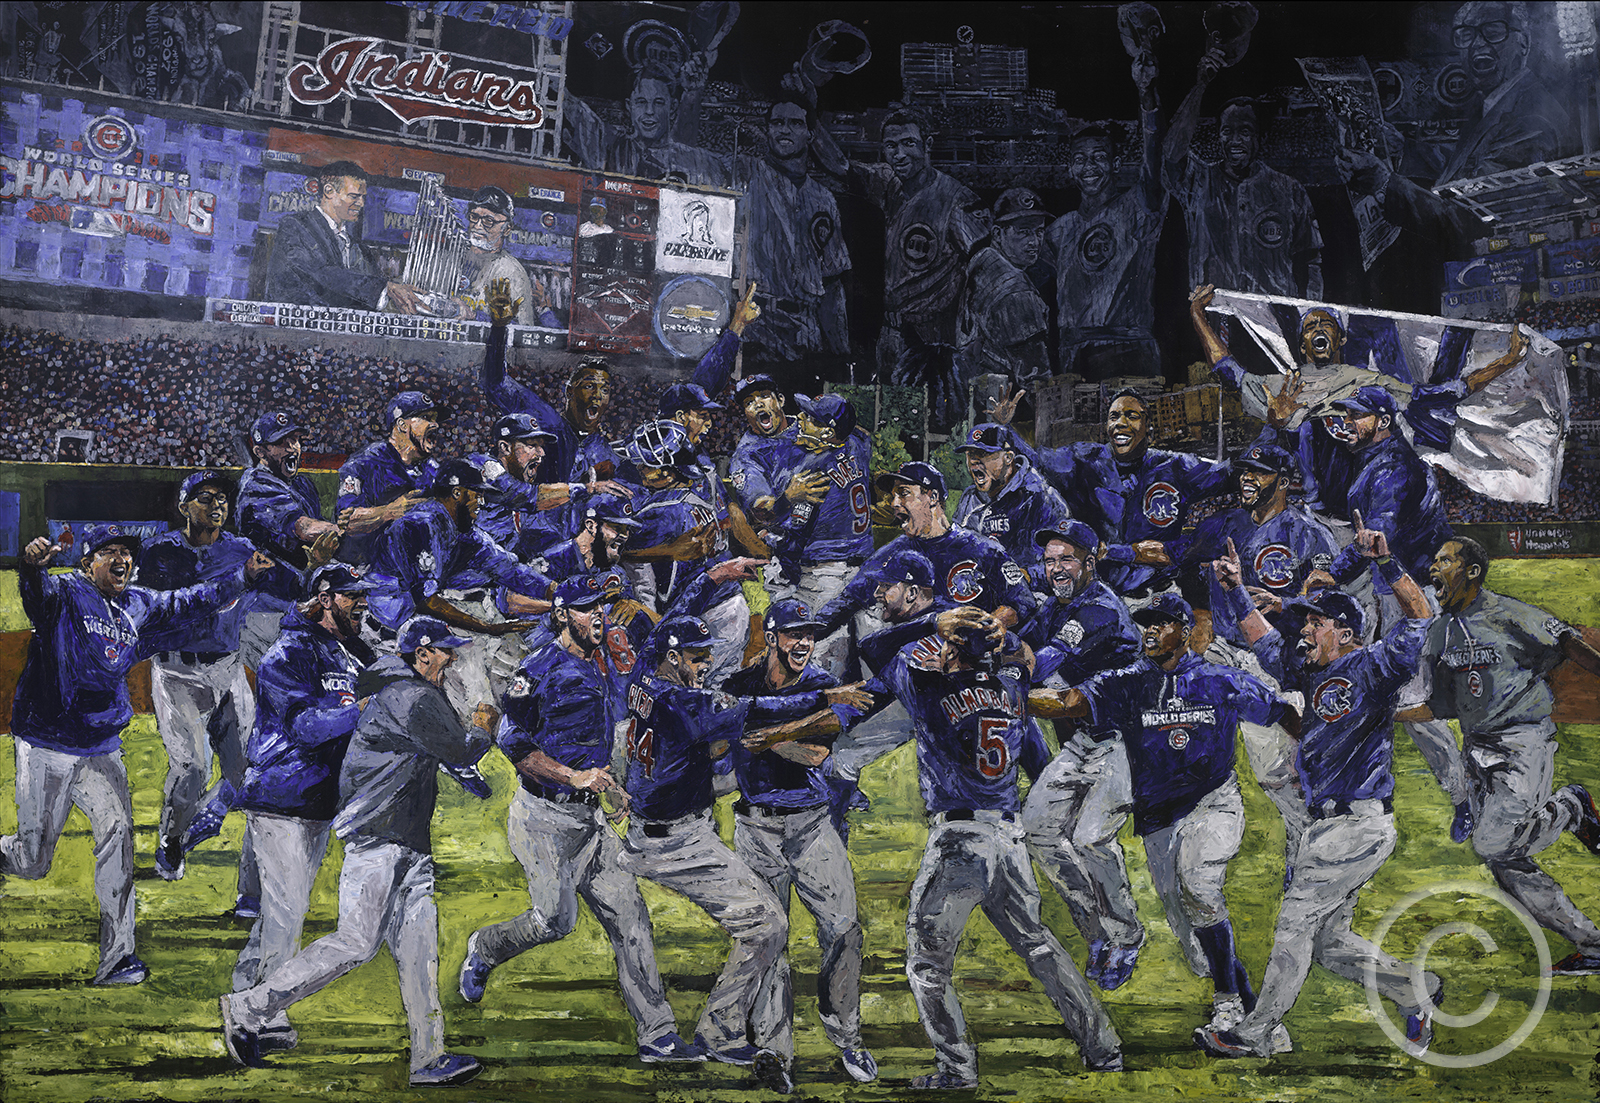 Yahoo Sports: MLB-sanctioned artist depicts Cubs' World Series win with painting